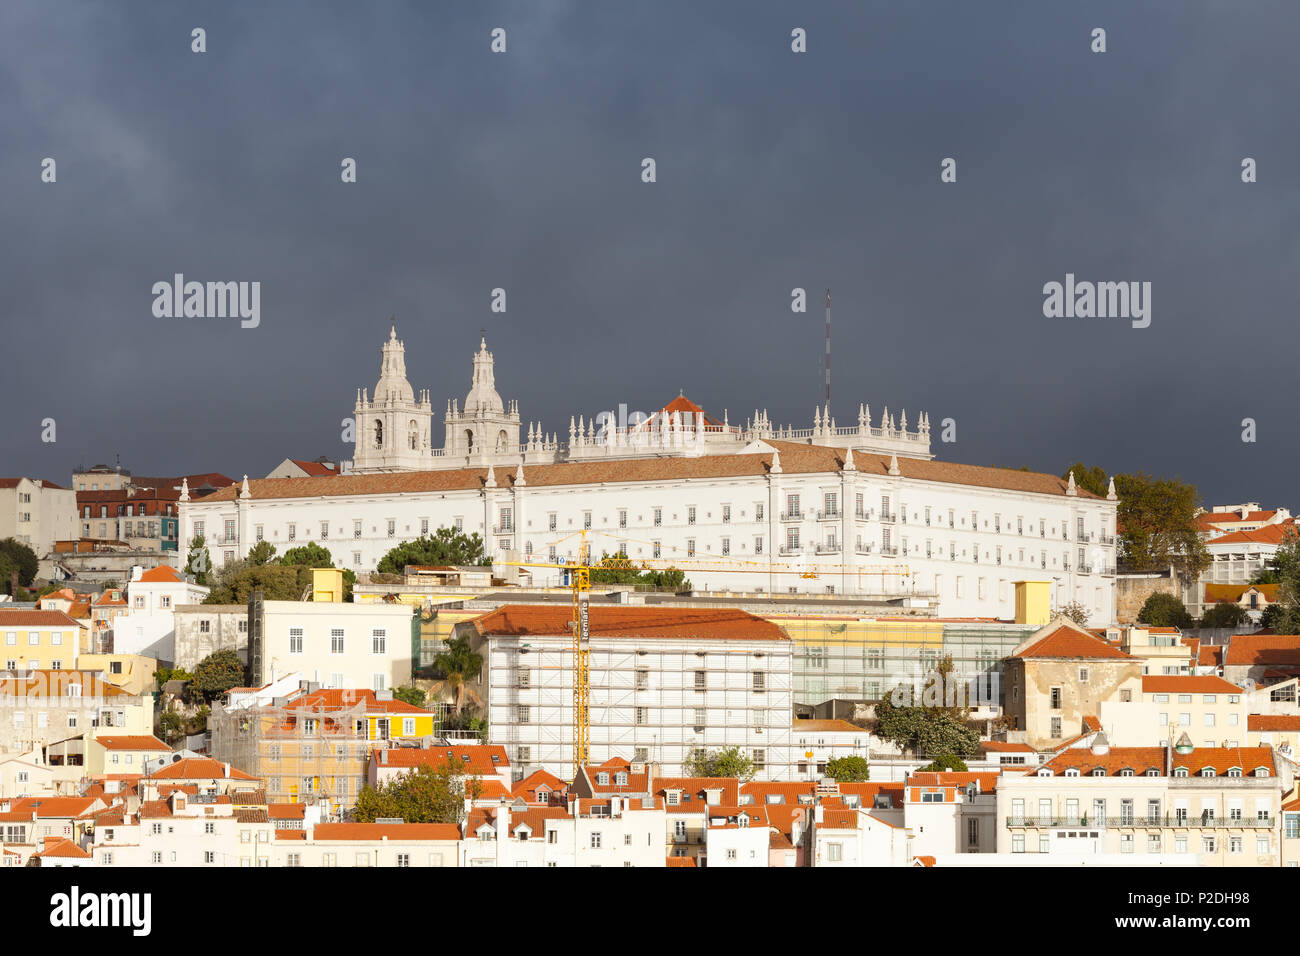 The Monastery of Saint Vincent Outside the Walls in Lisbon, Portugal. Stock Photo